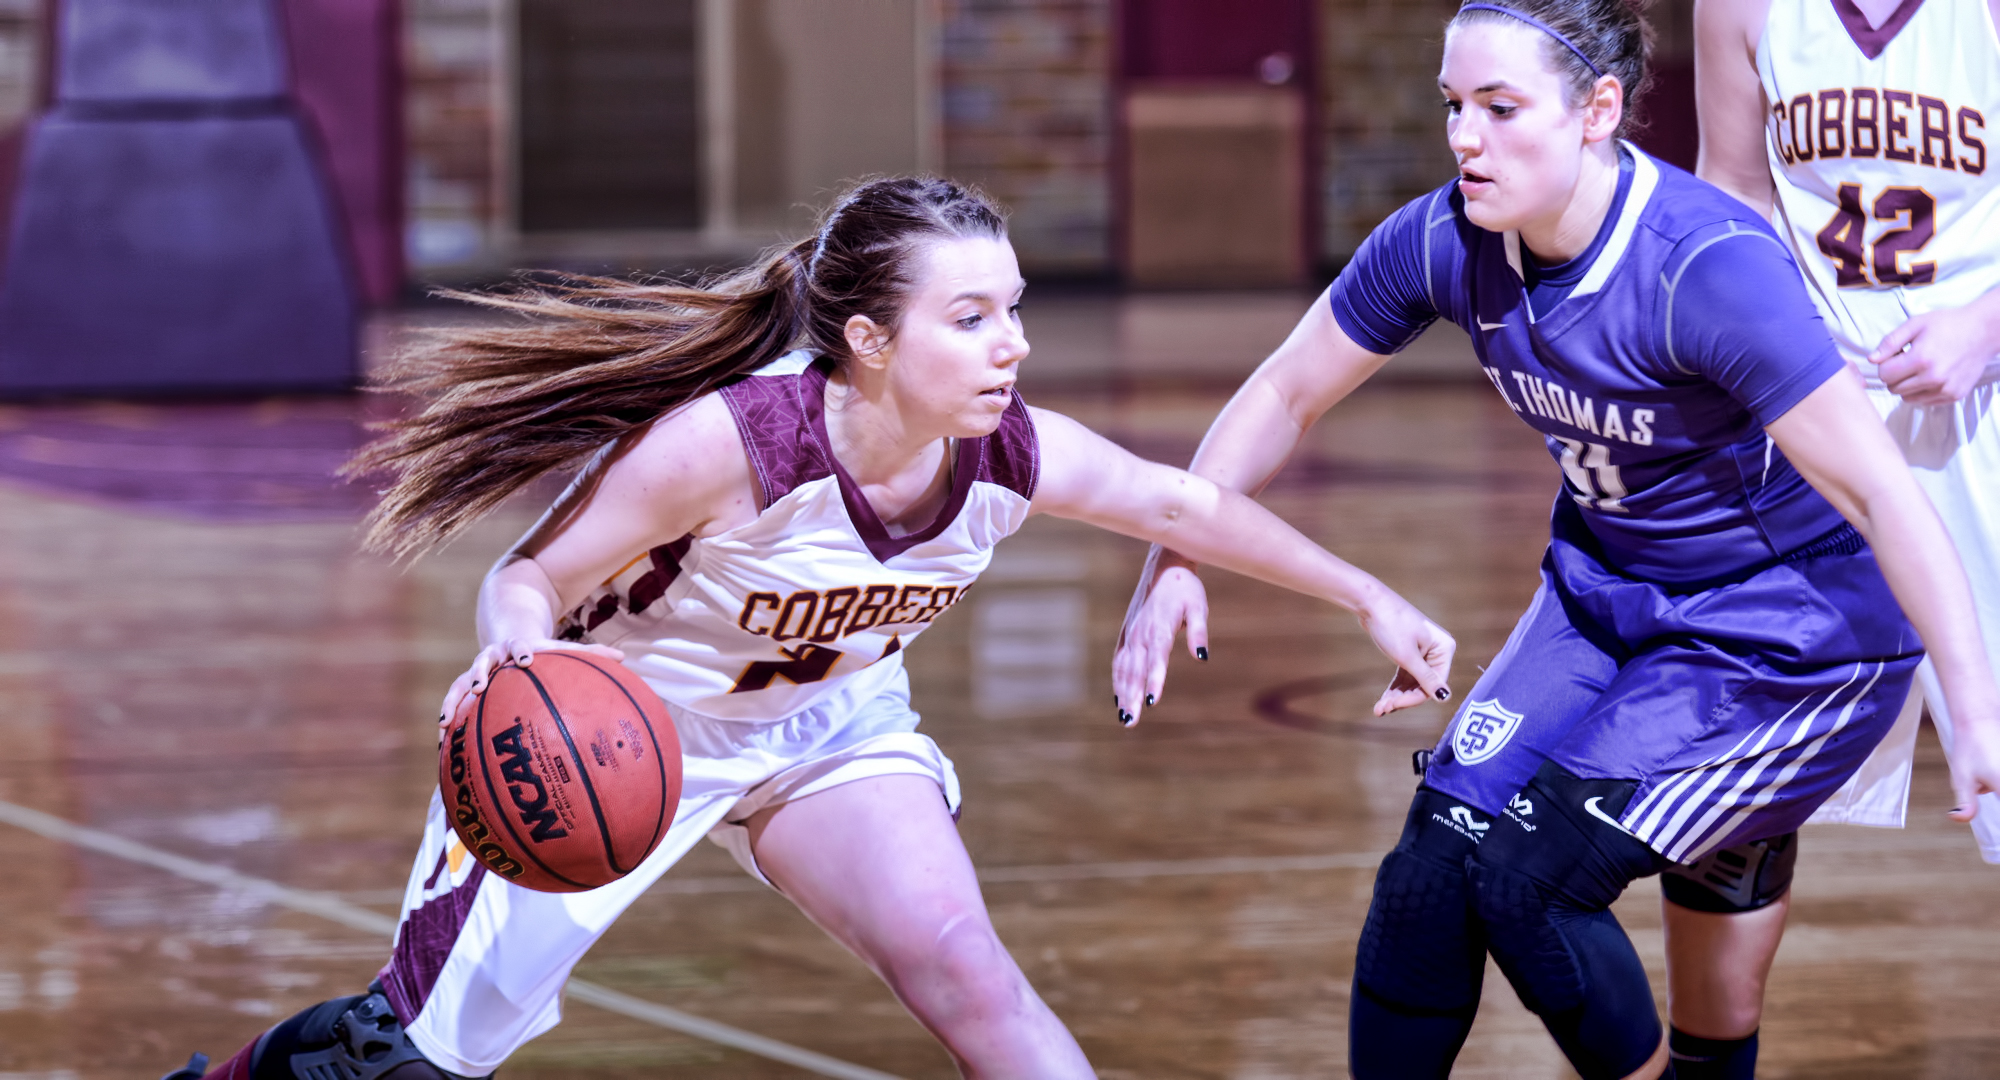 Senior Cassidy Rahman drives around a St. Thomas defender during the Cobbers' game with the nationally ranked Tommies. Rahman finished with five points and two assists. (Photo courtesy of Sam Sabin)